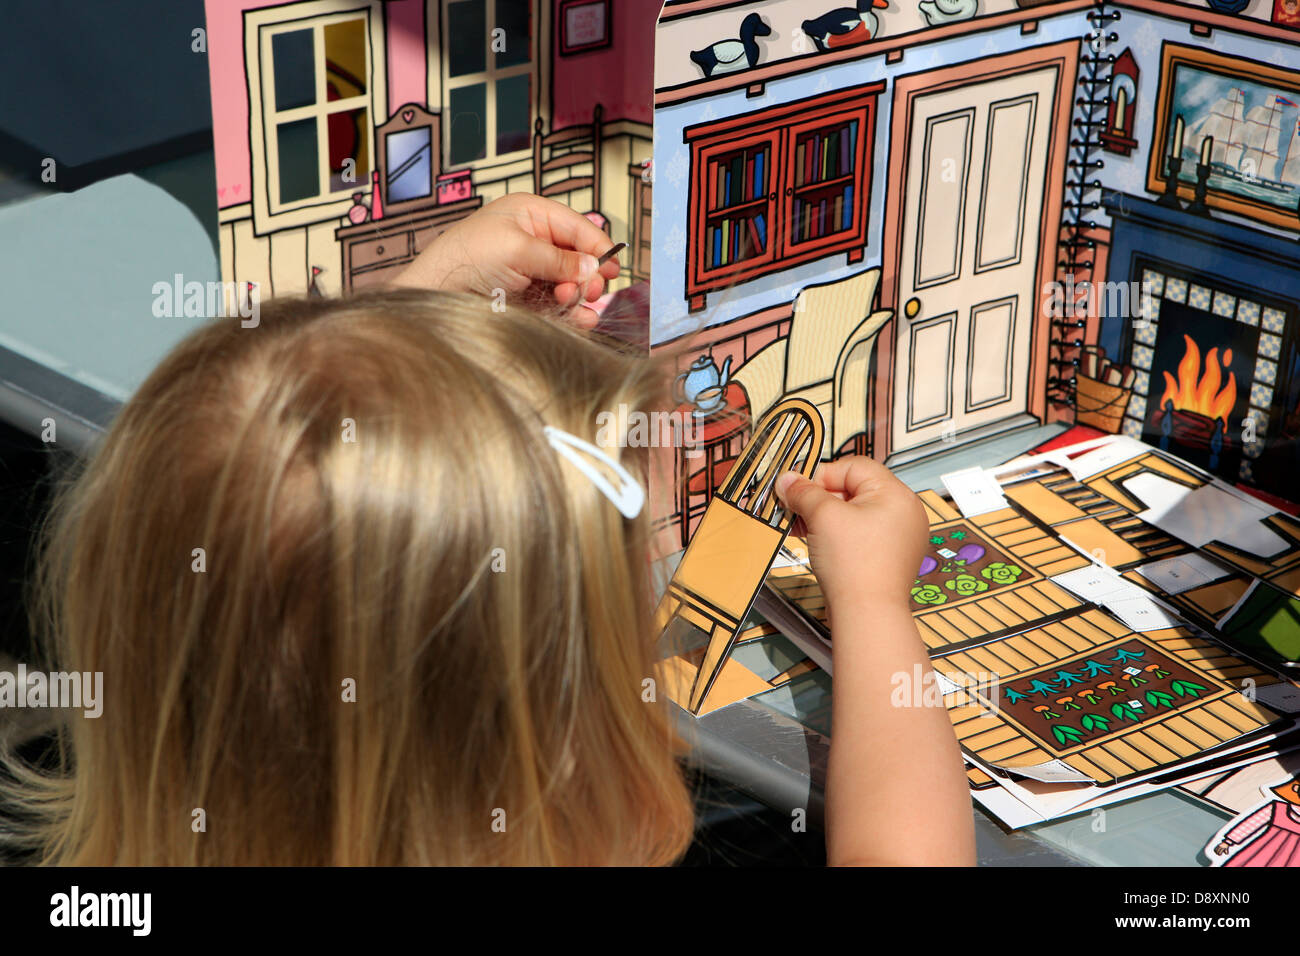 blond-haired-girl-playing-with-a-dolls-h